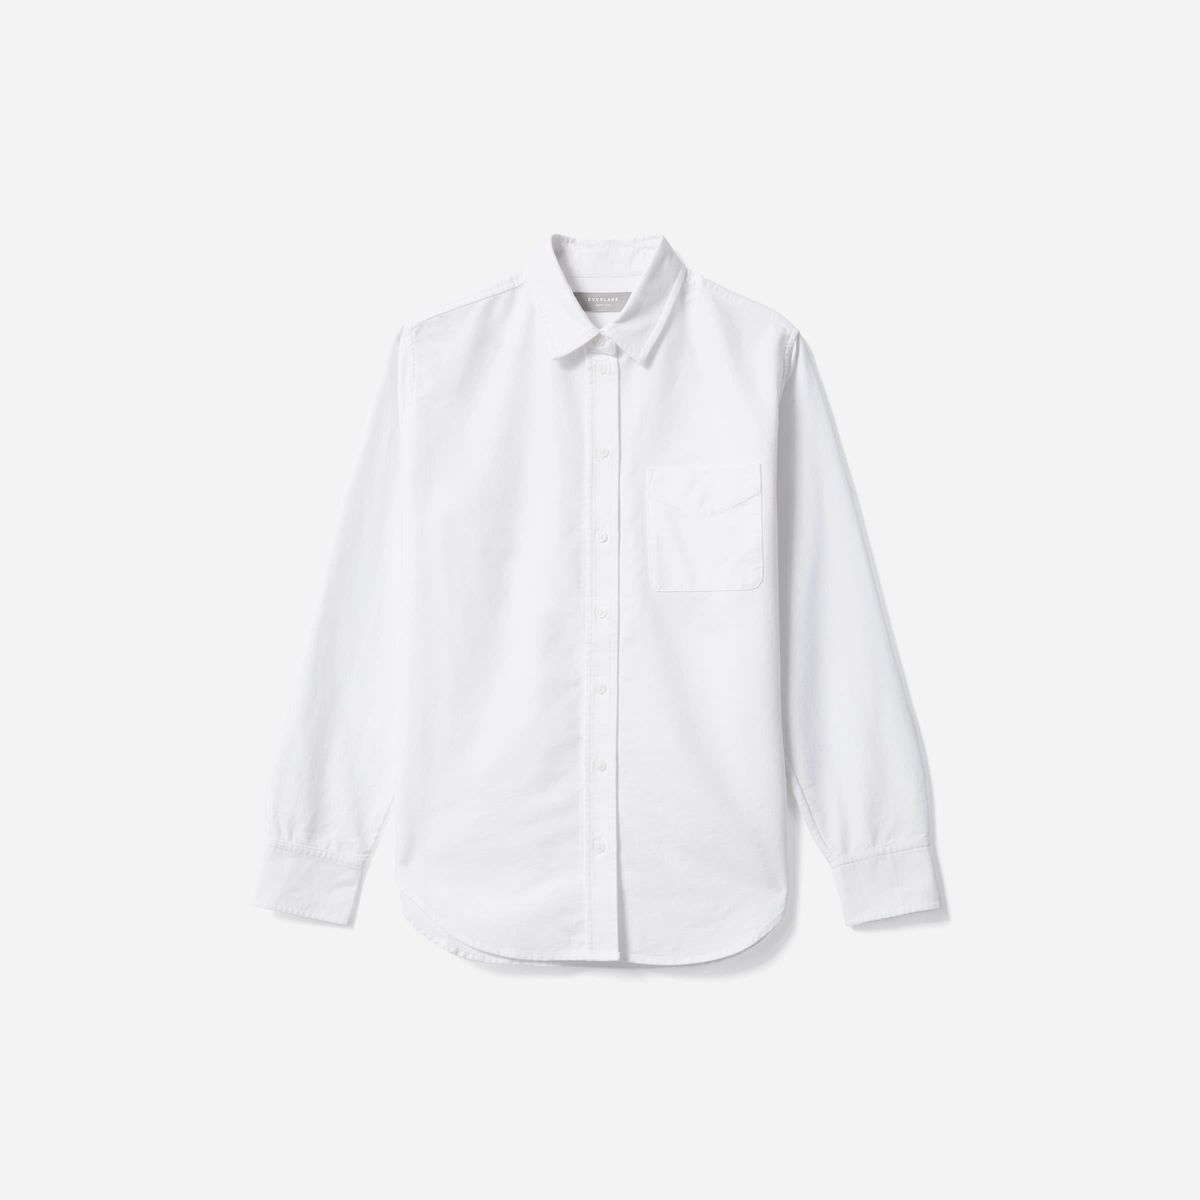 The Relaxed Oxford Shirt